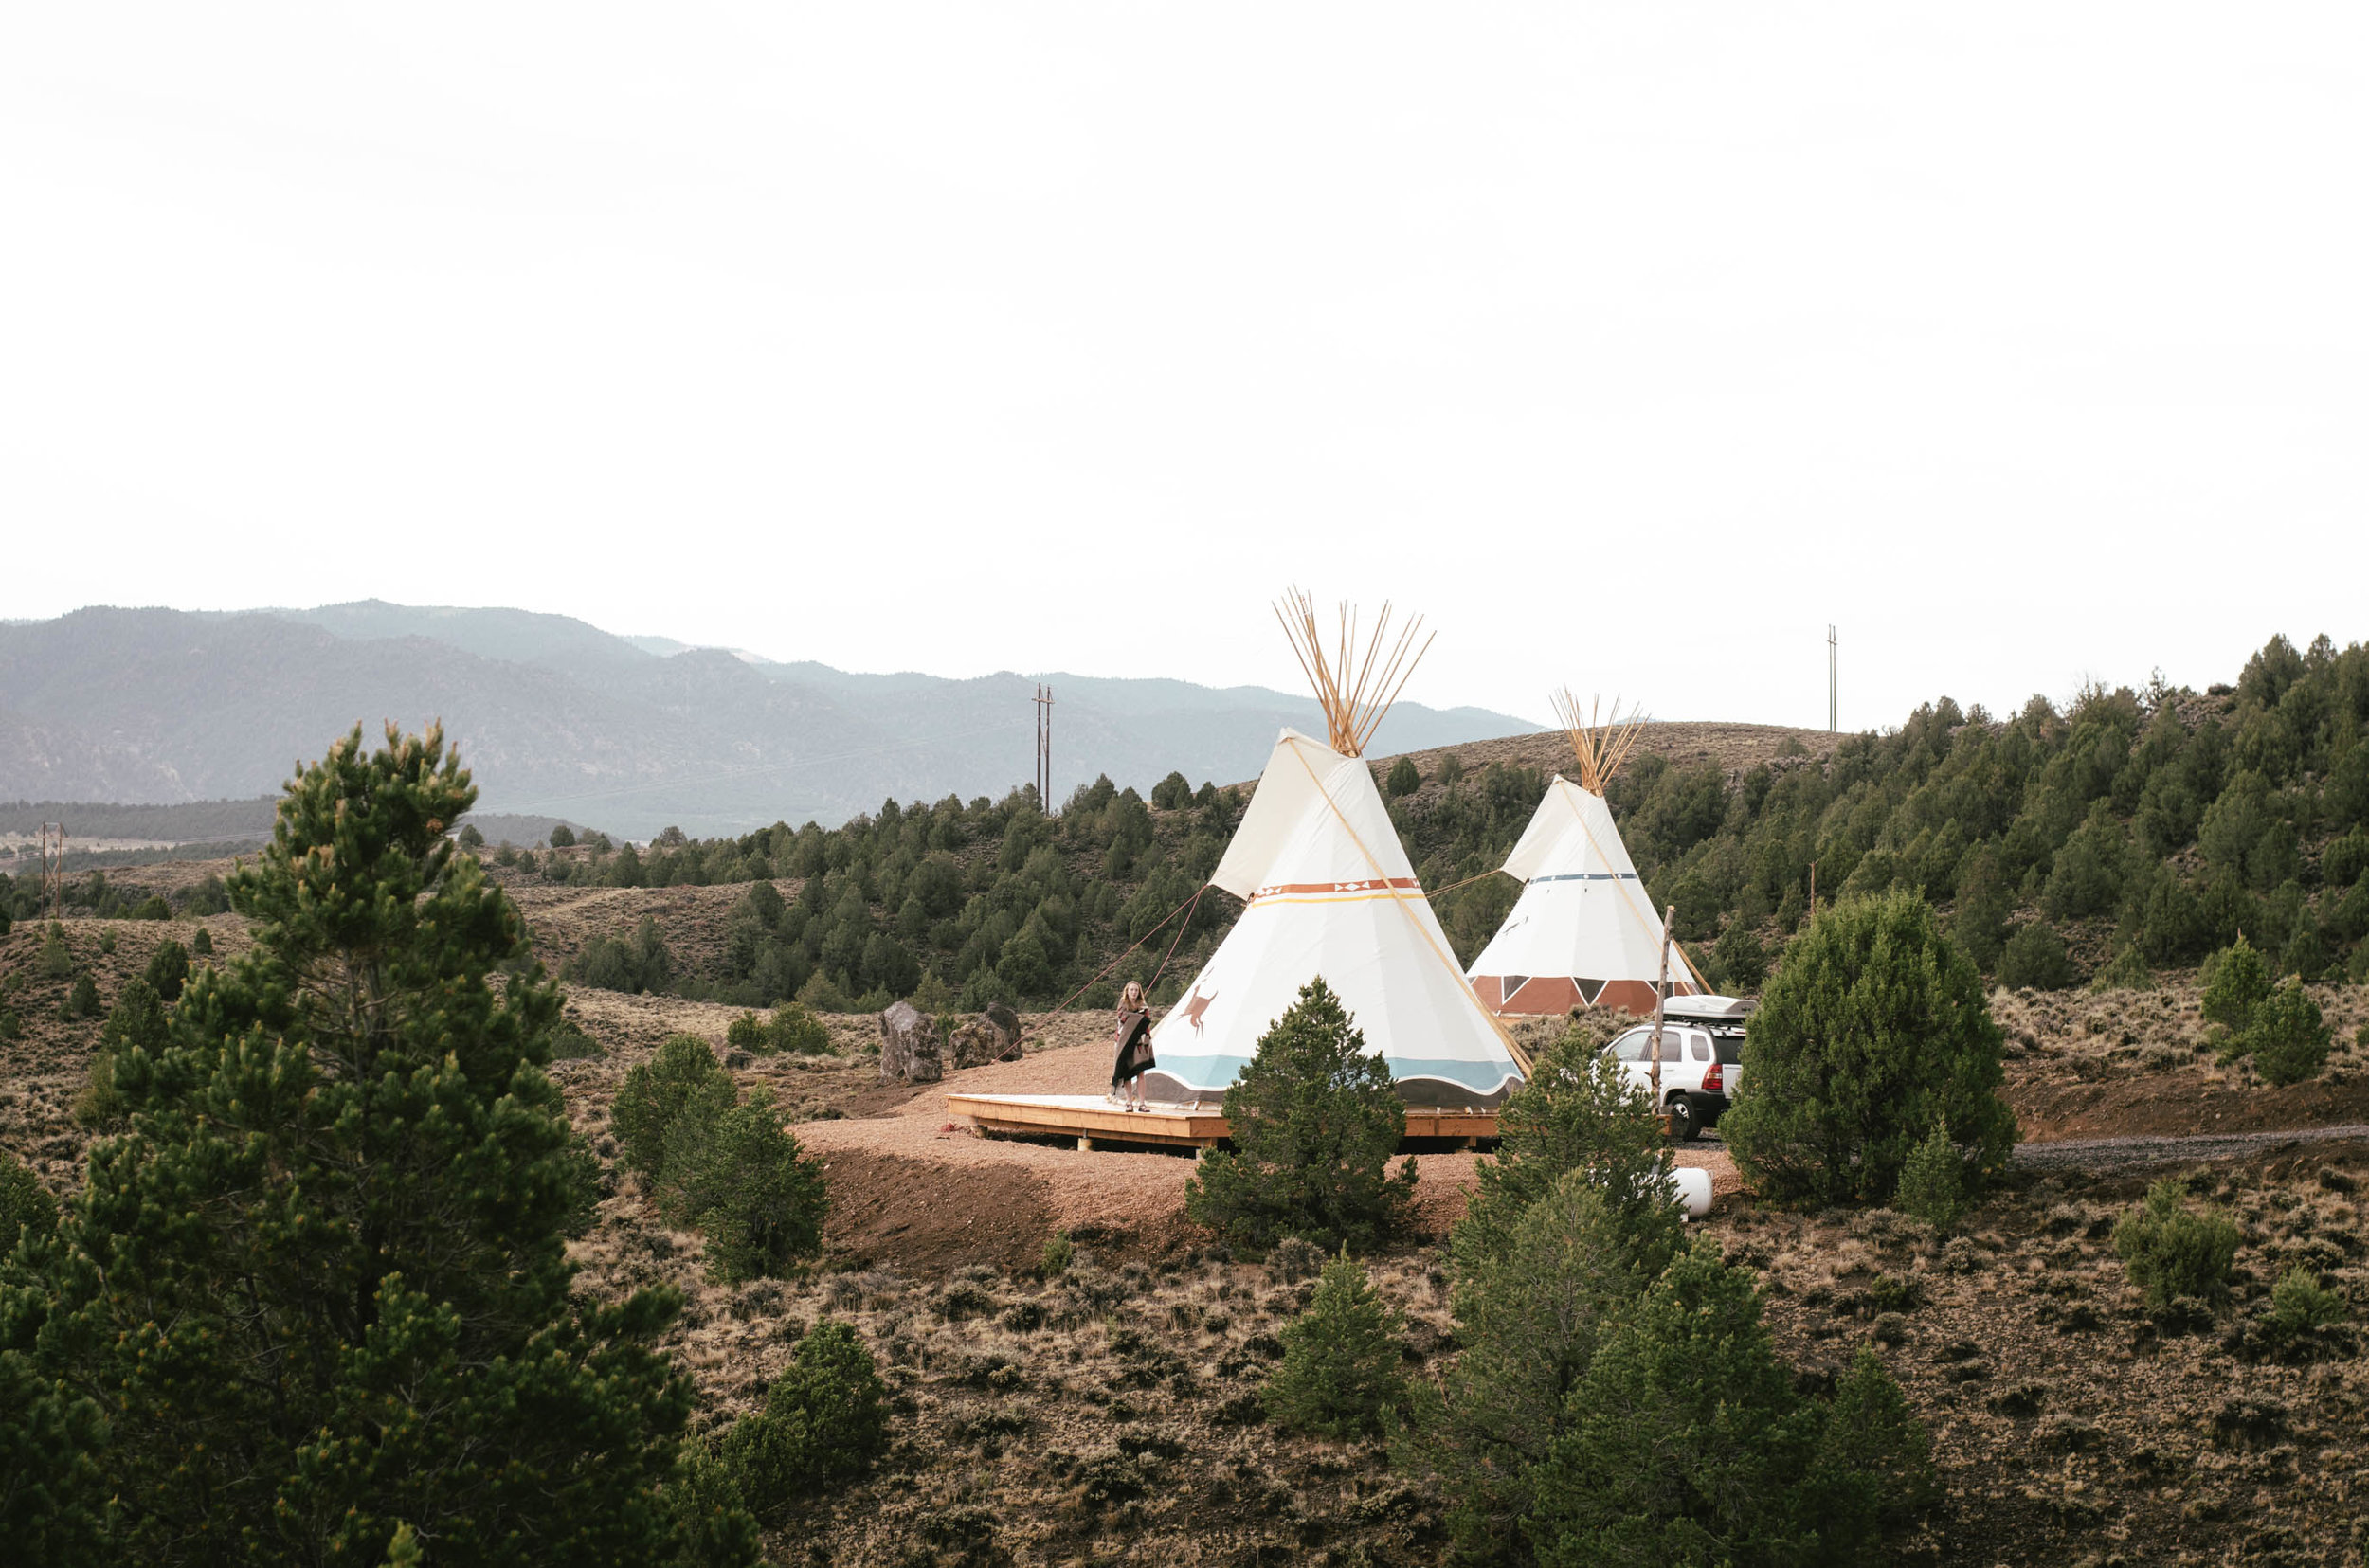 Two luxury tipi tents 30 minutes away from Bryce Canyon